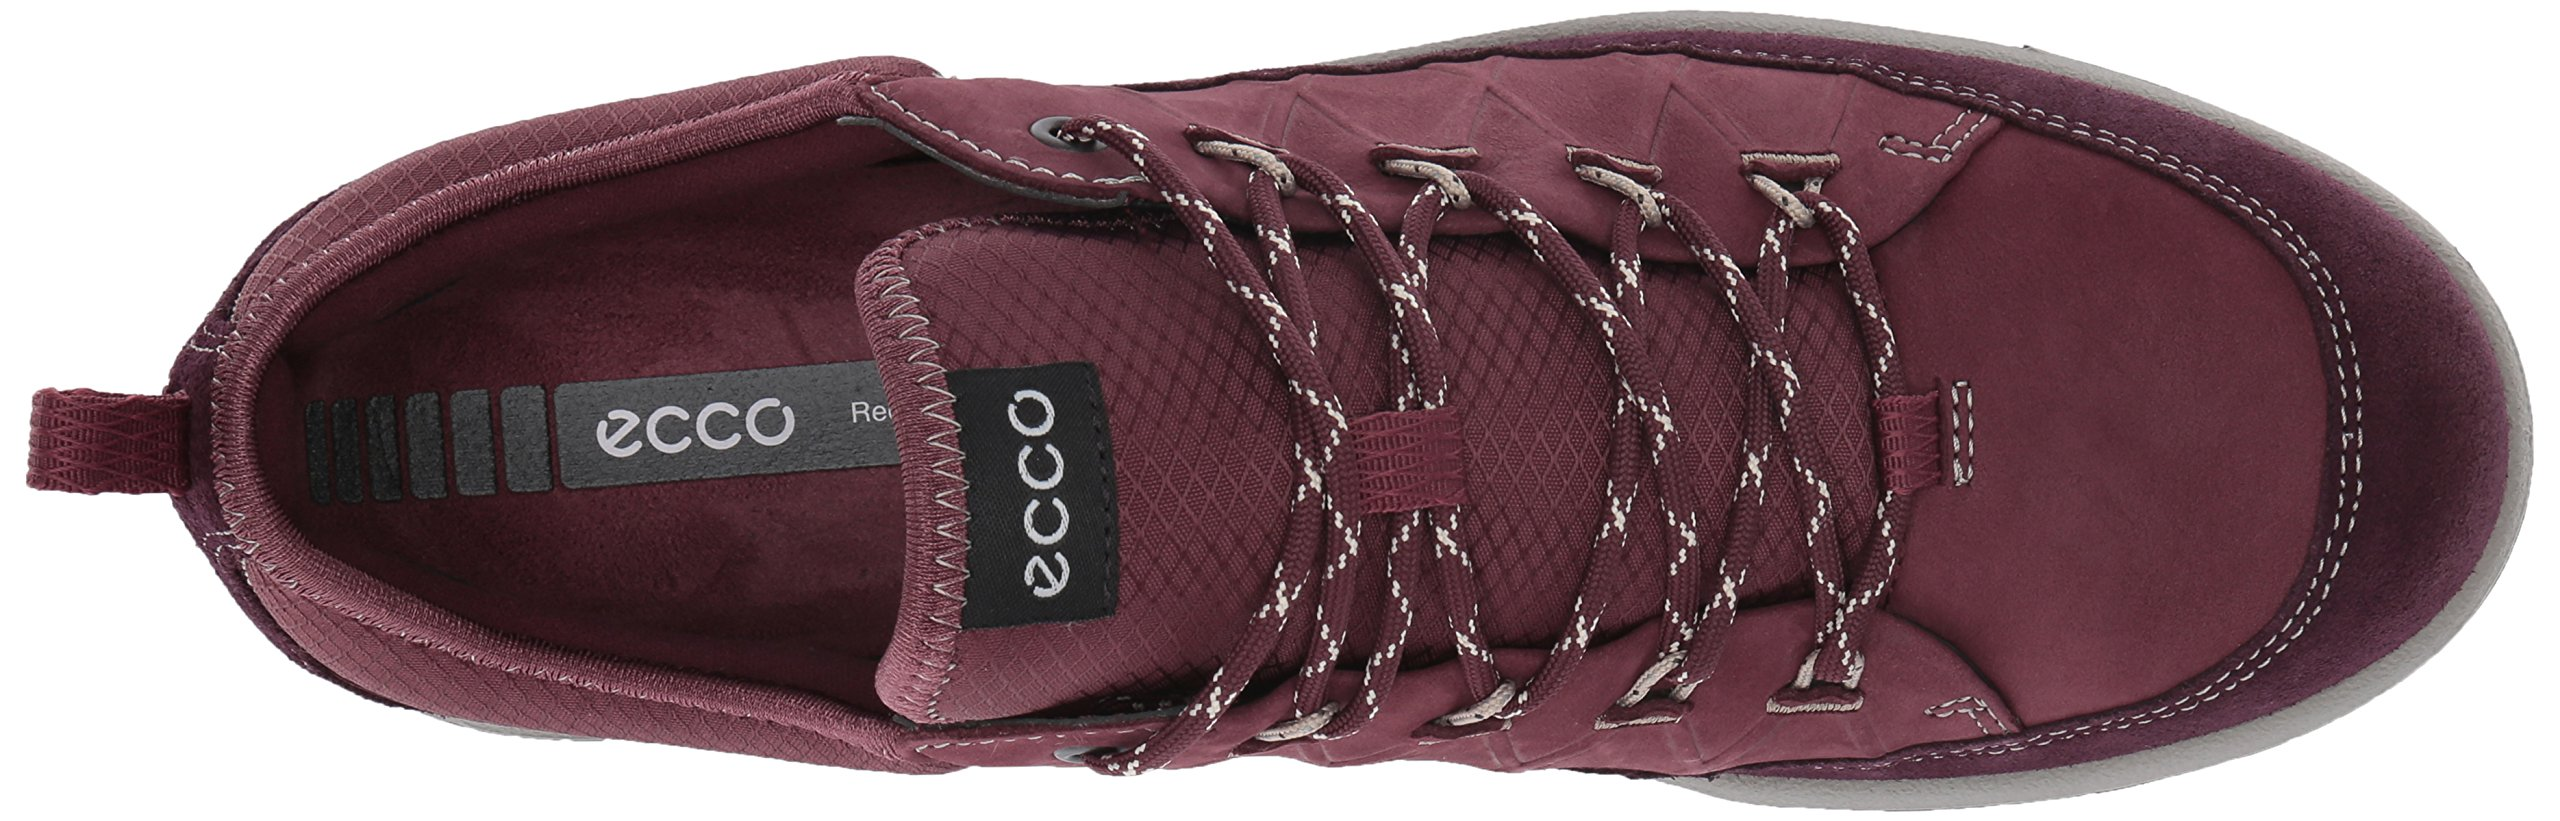 81hQOk7maiL - ECCO Women's Aspina Multisport Outdoor Shoes